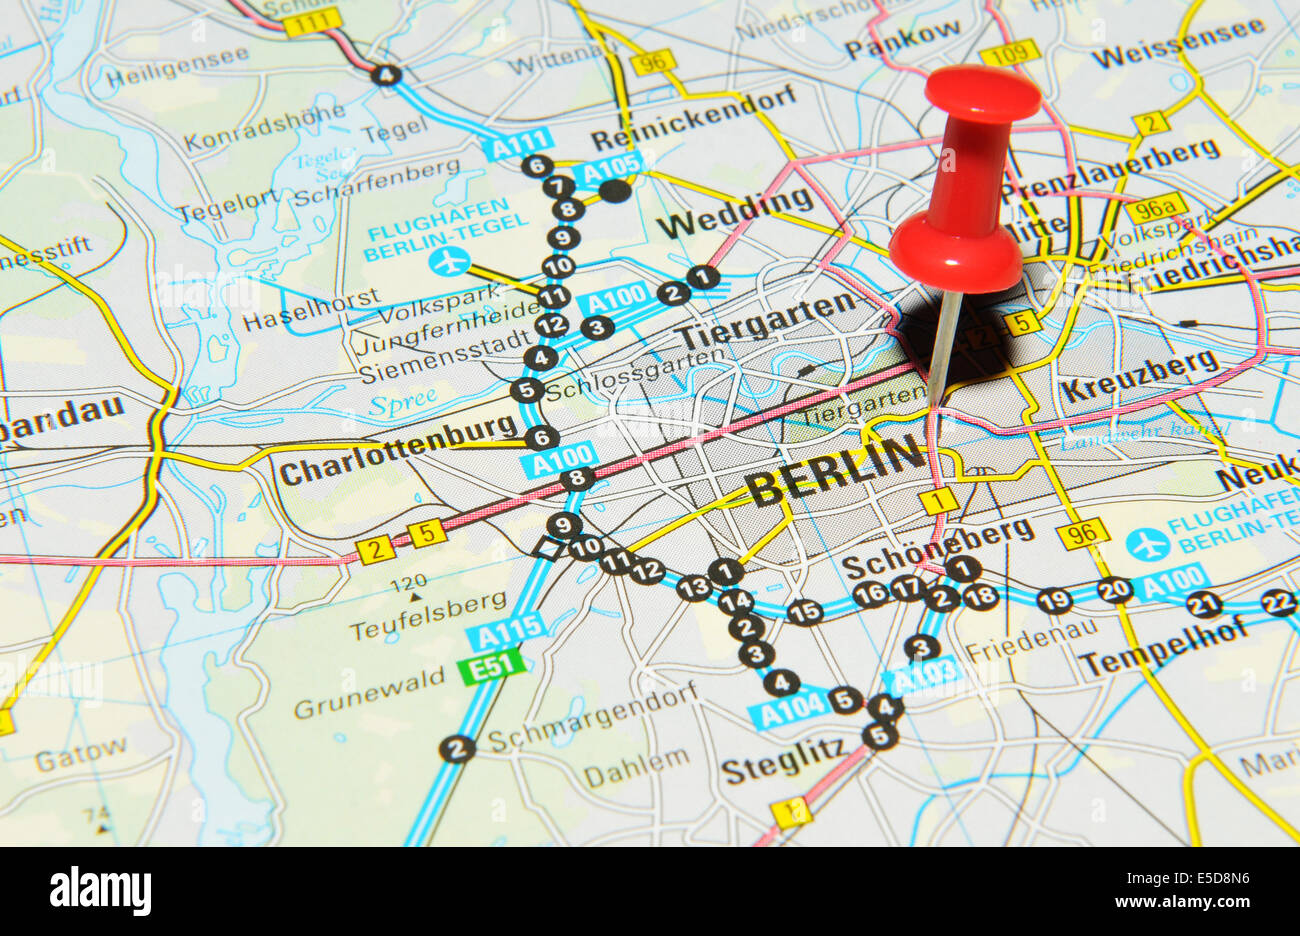 Berlin On Map Stock Photos & Berlin On Map Stock Images - Alamy